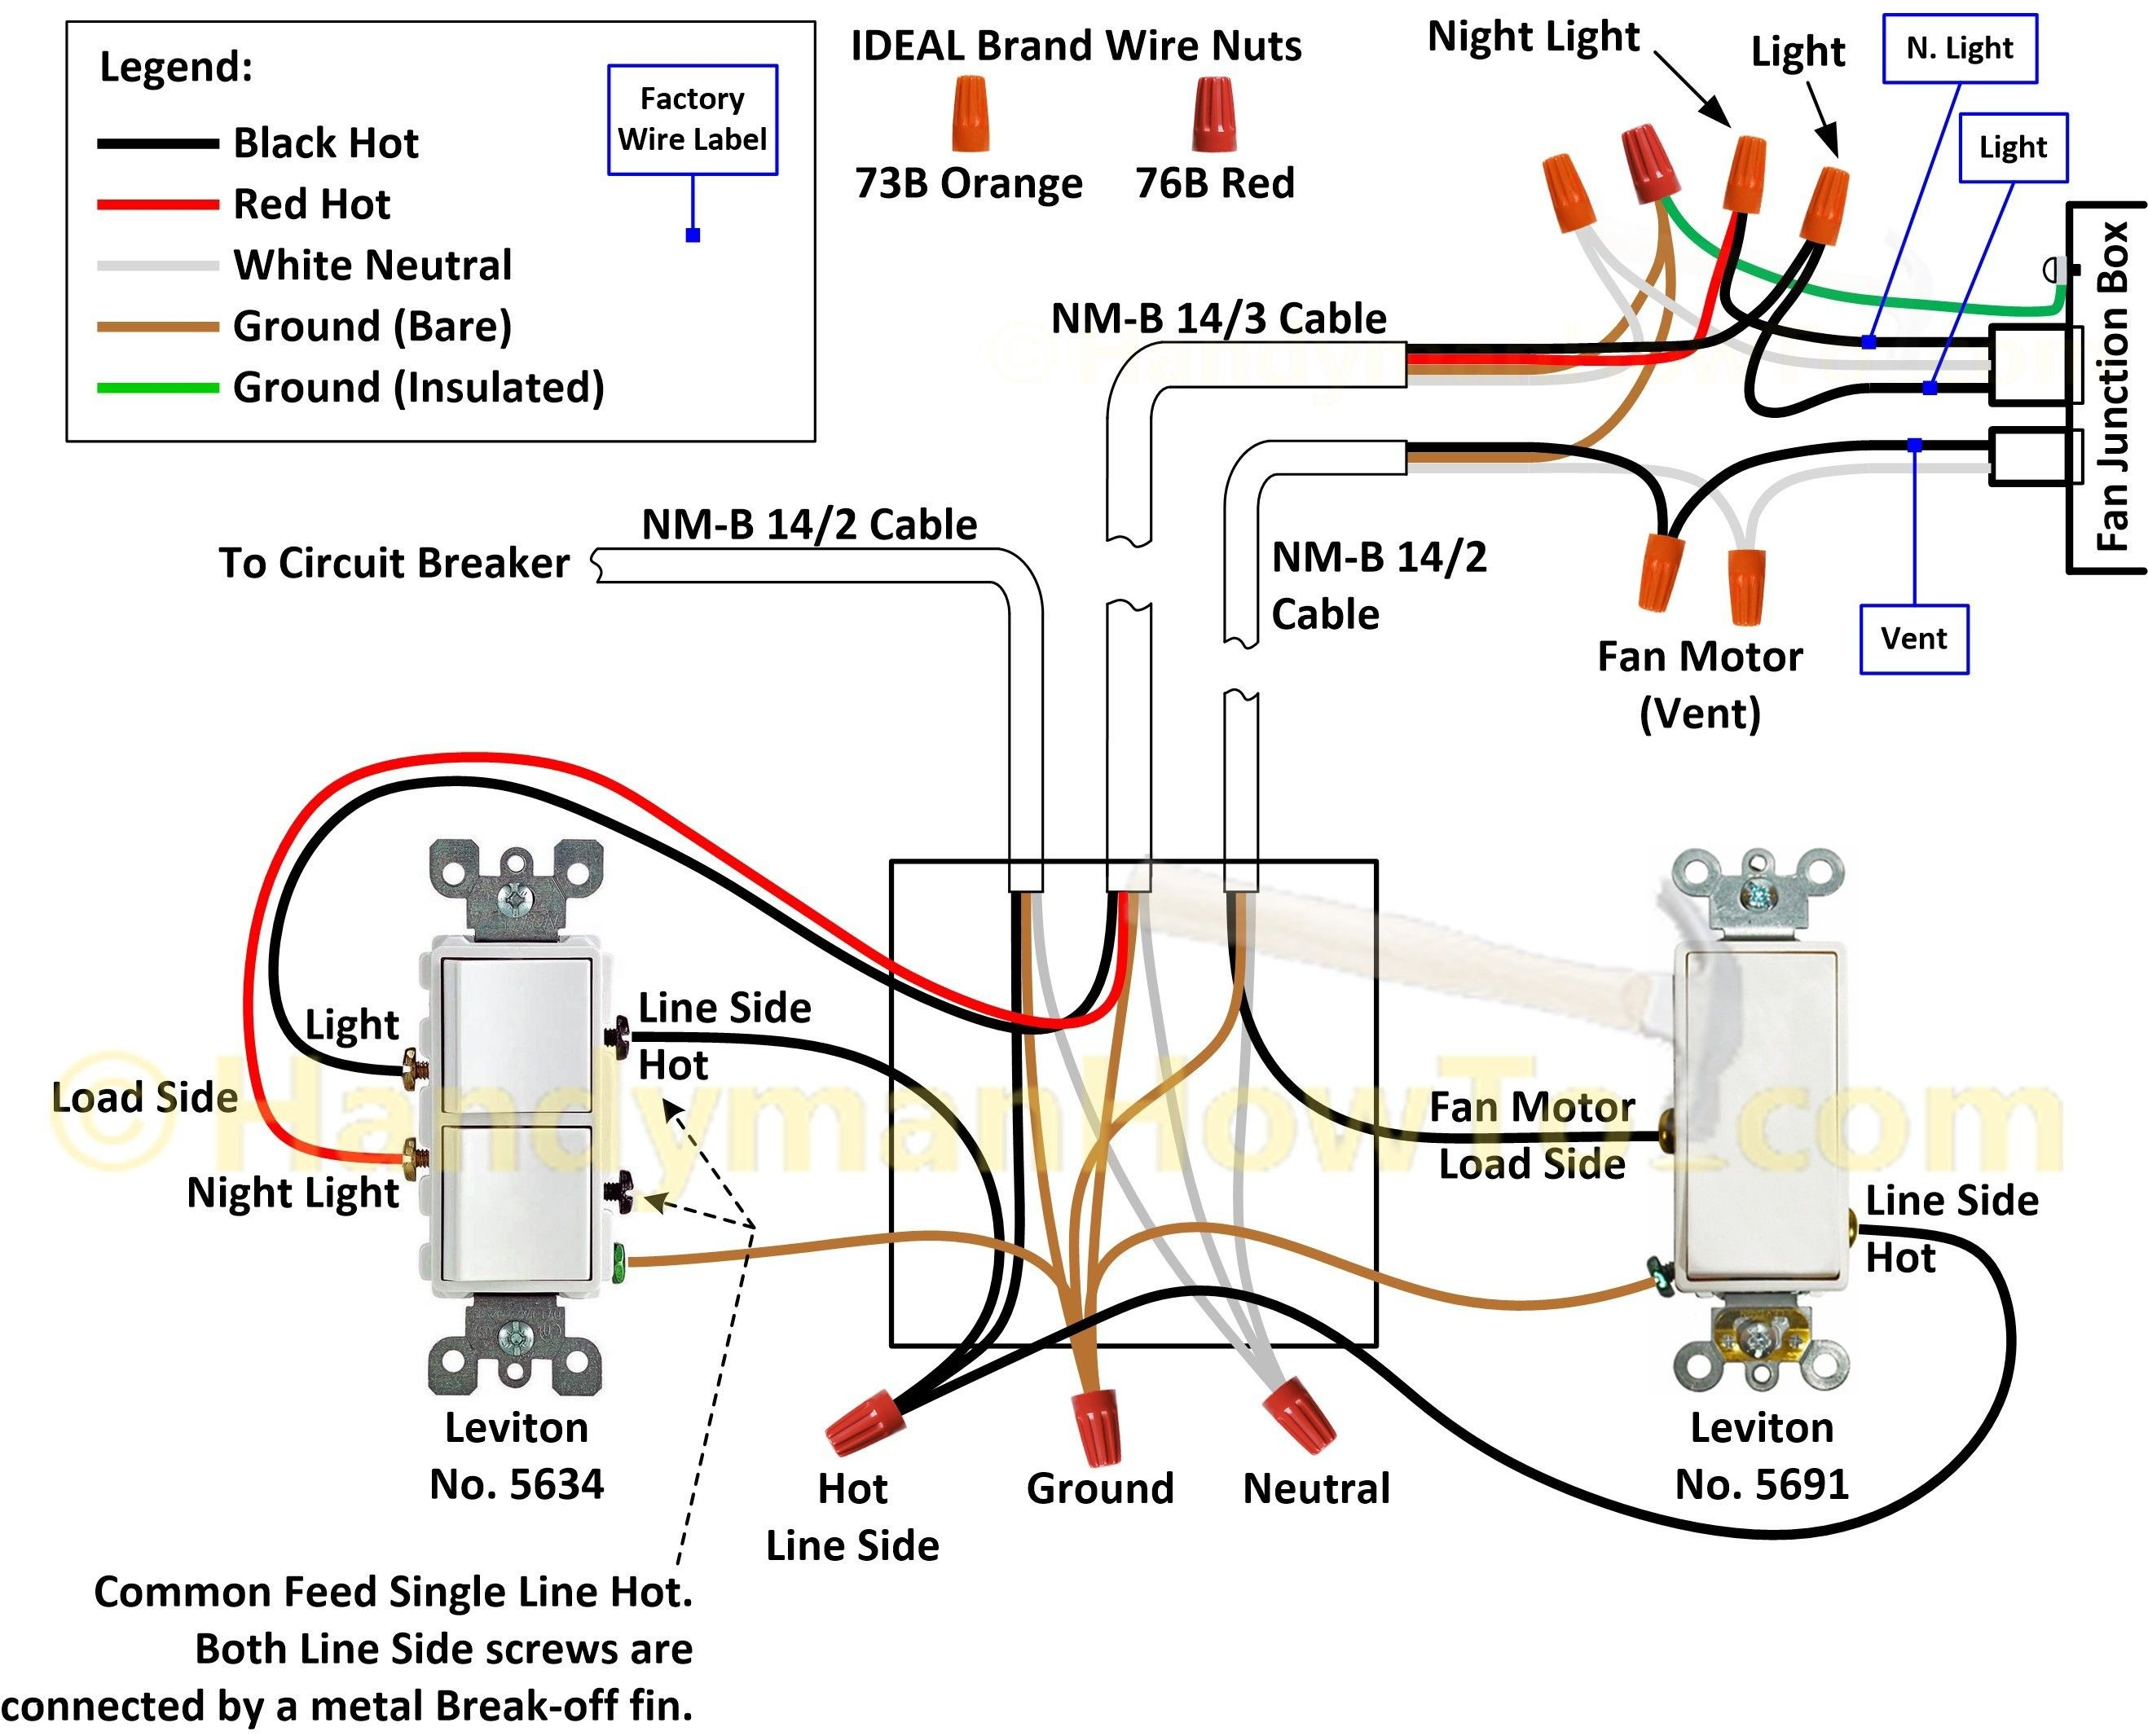 Diagram Wiringdiagram Diagramming Diagramm Visuals Visualisation Graphical Light Switch Wiring Ceiling Fan Wiring Ceiling Fan Switch